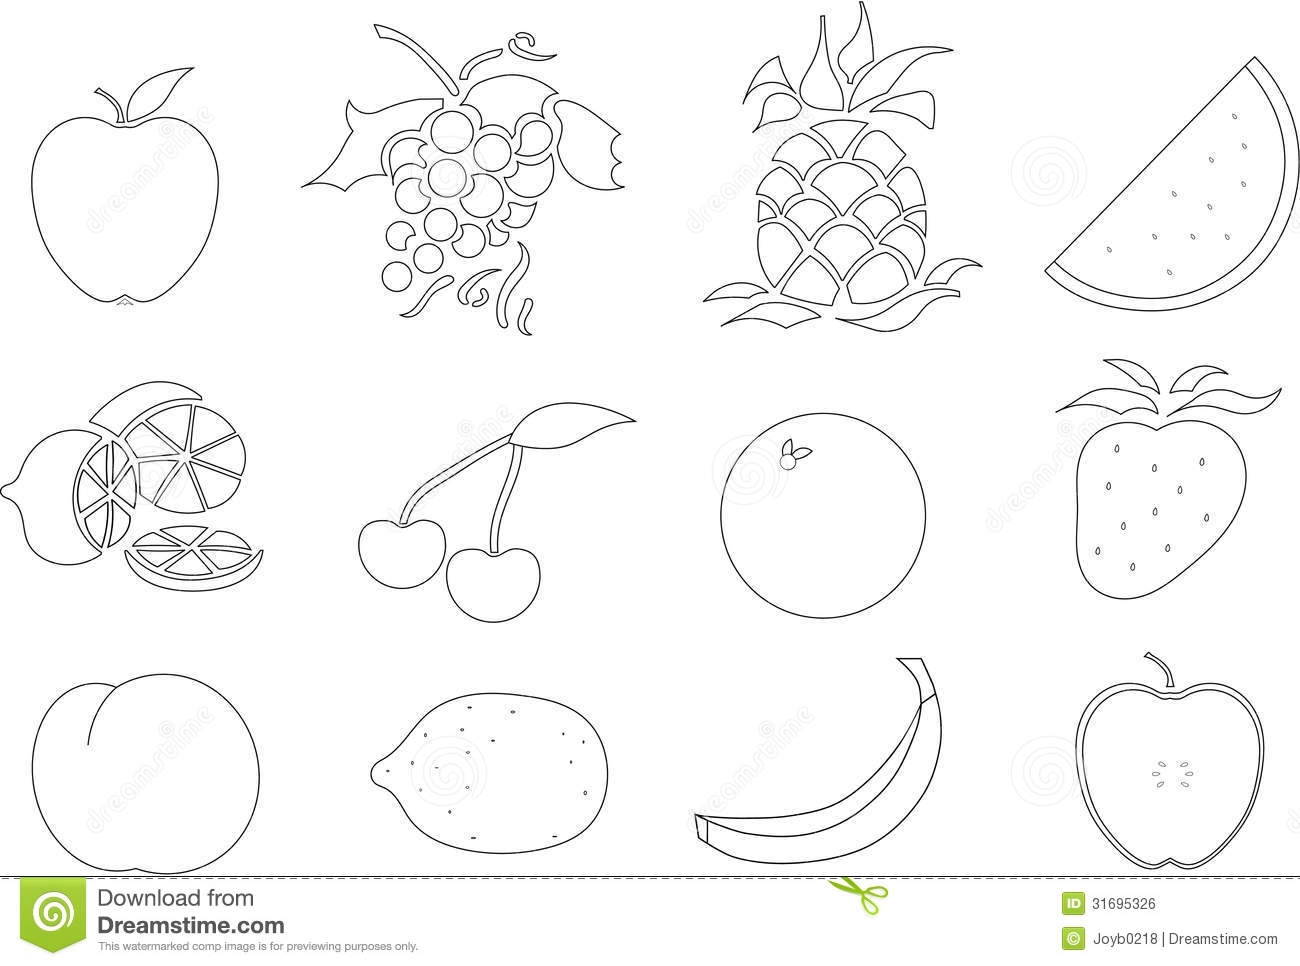 Fruit Salad Coloring Page At Getdrawings